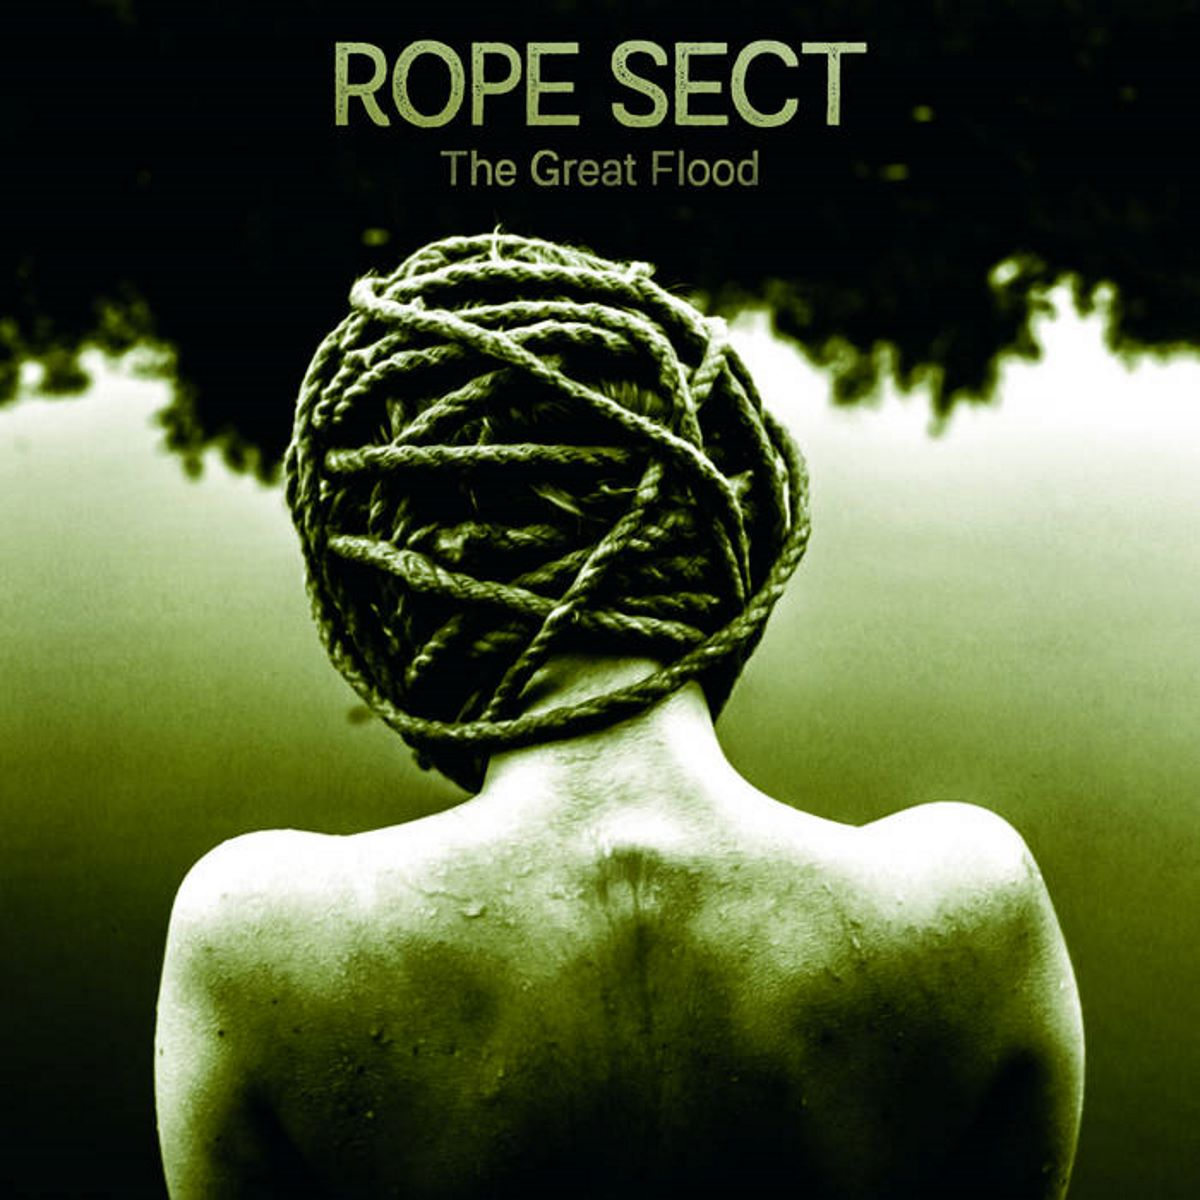 ROPE SECT - The Great Flood - album cover